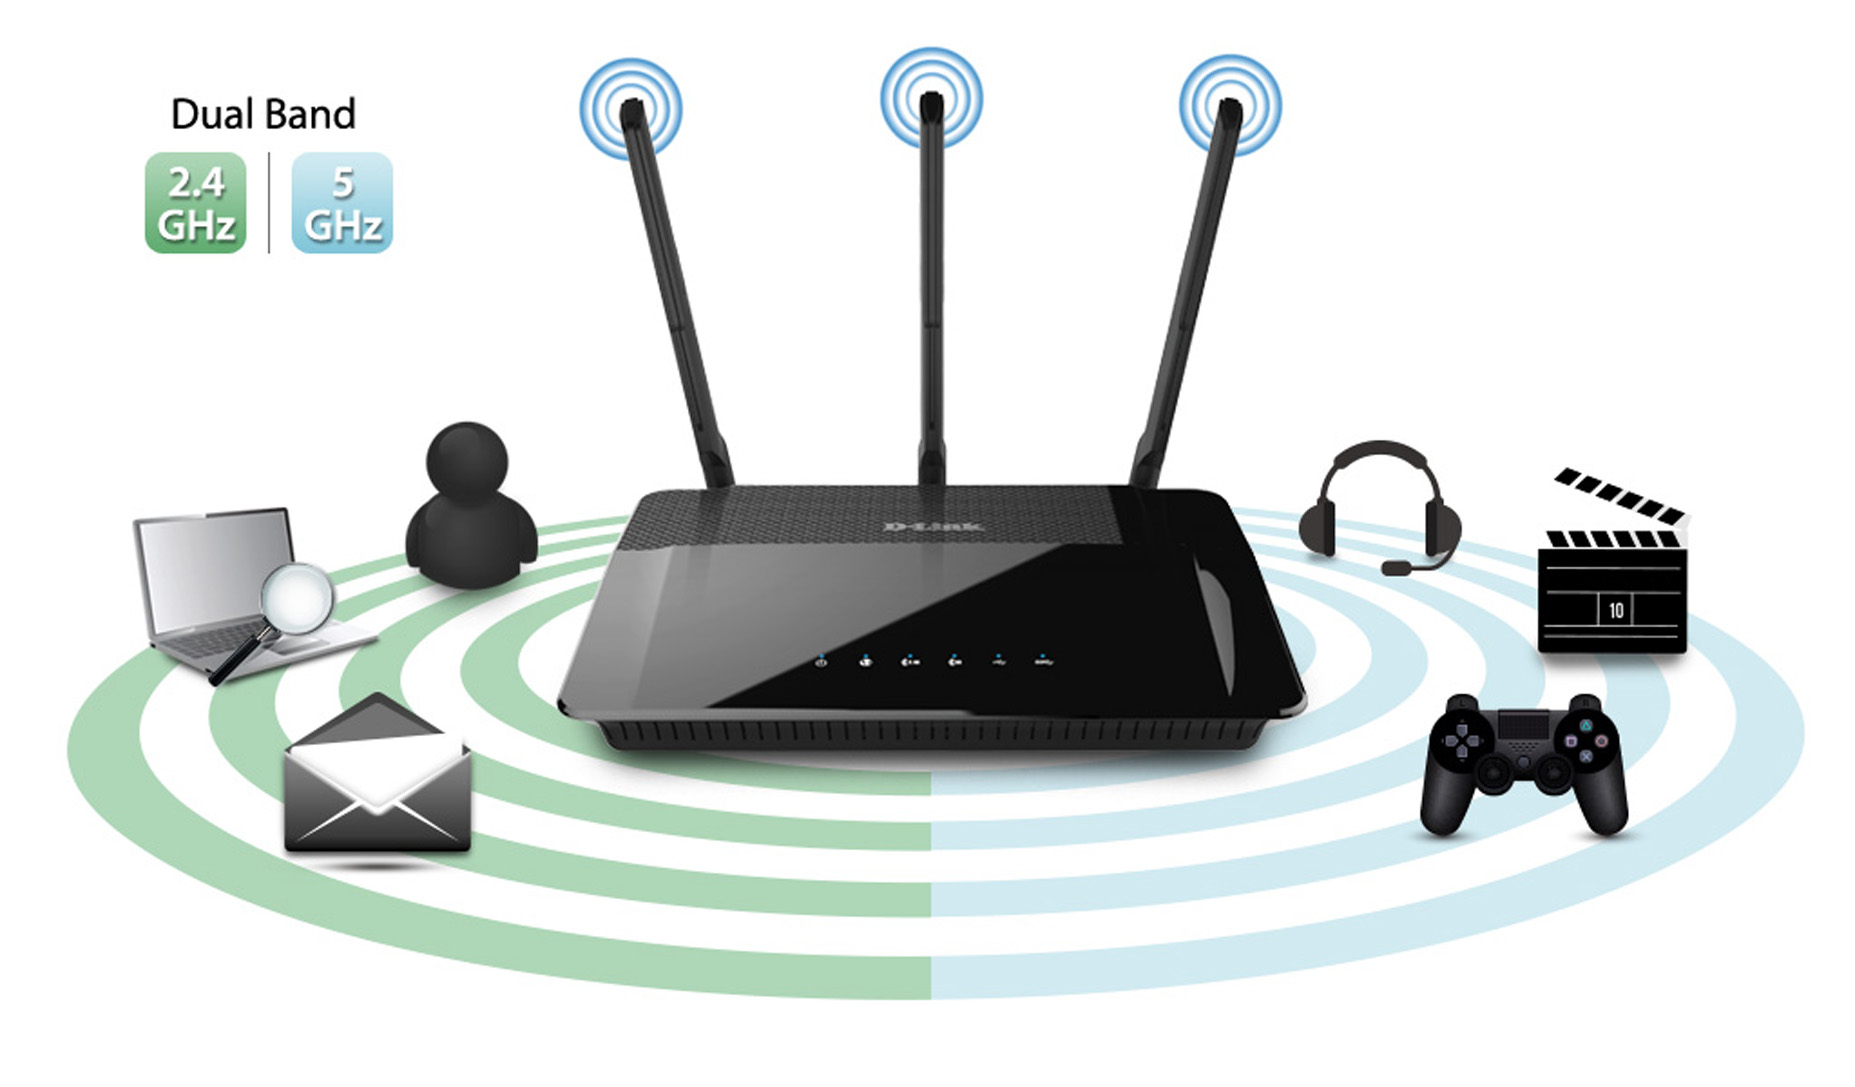 how to set up microsoft outlook on dual wan router